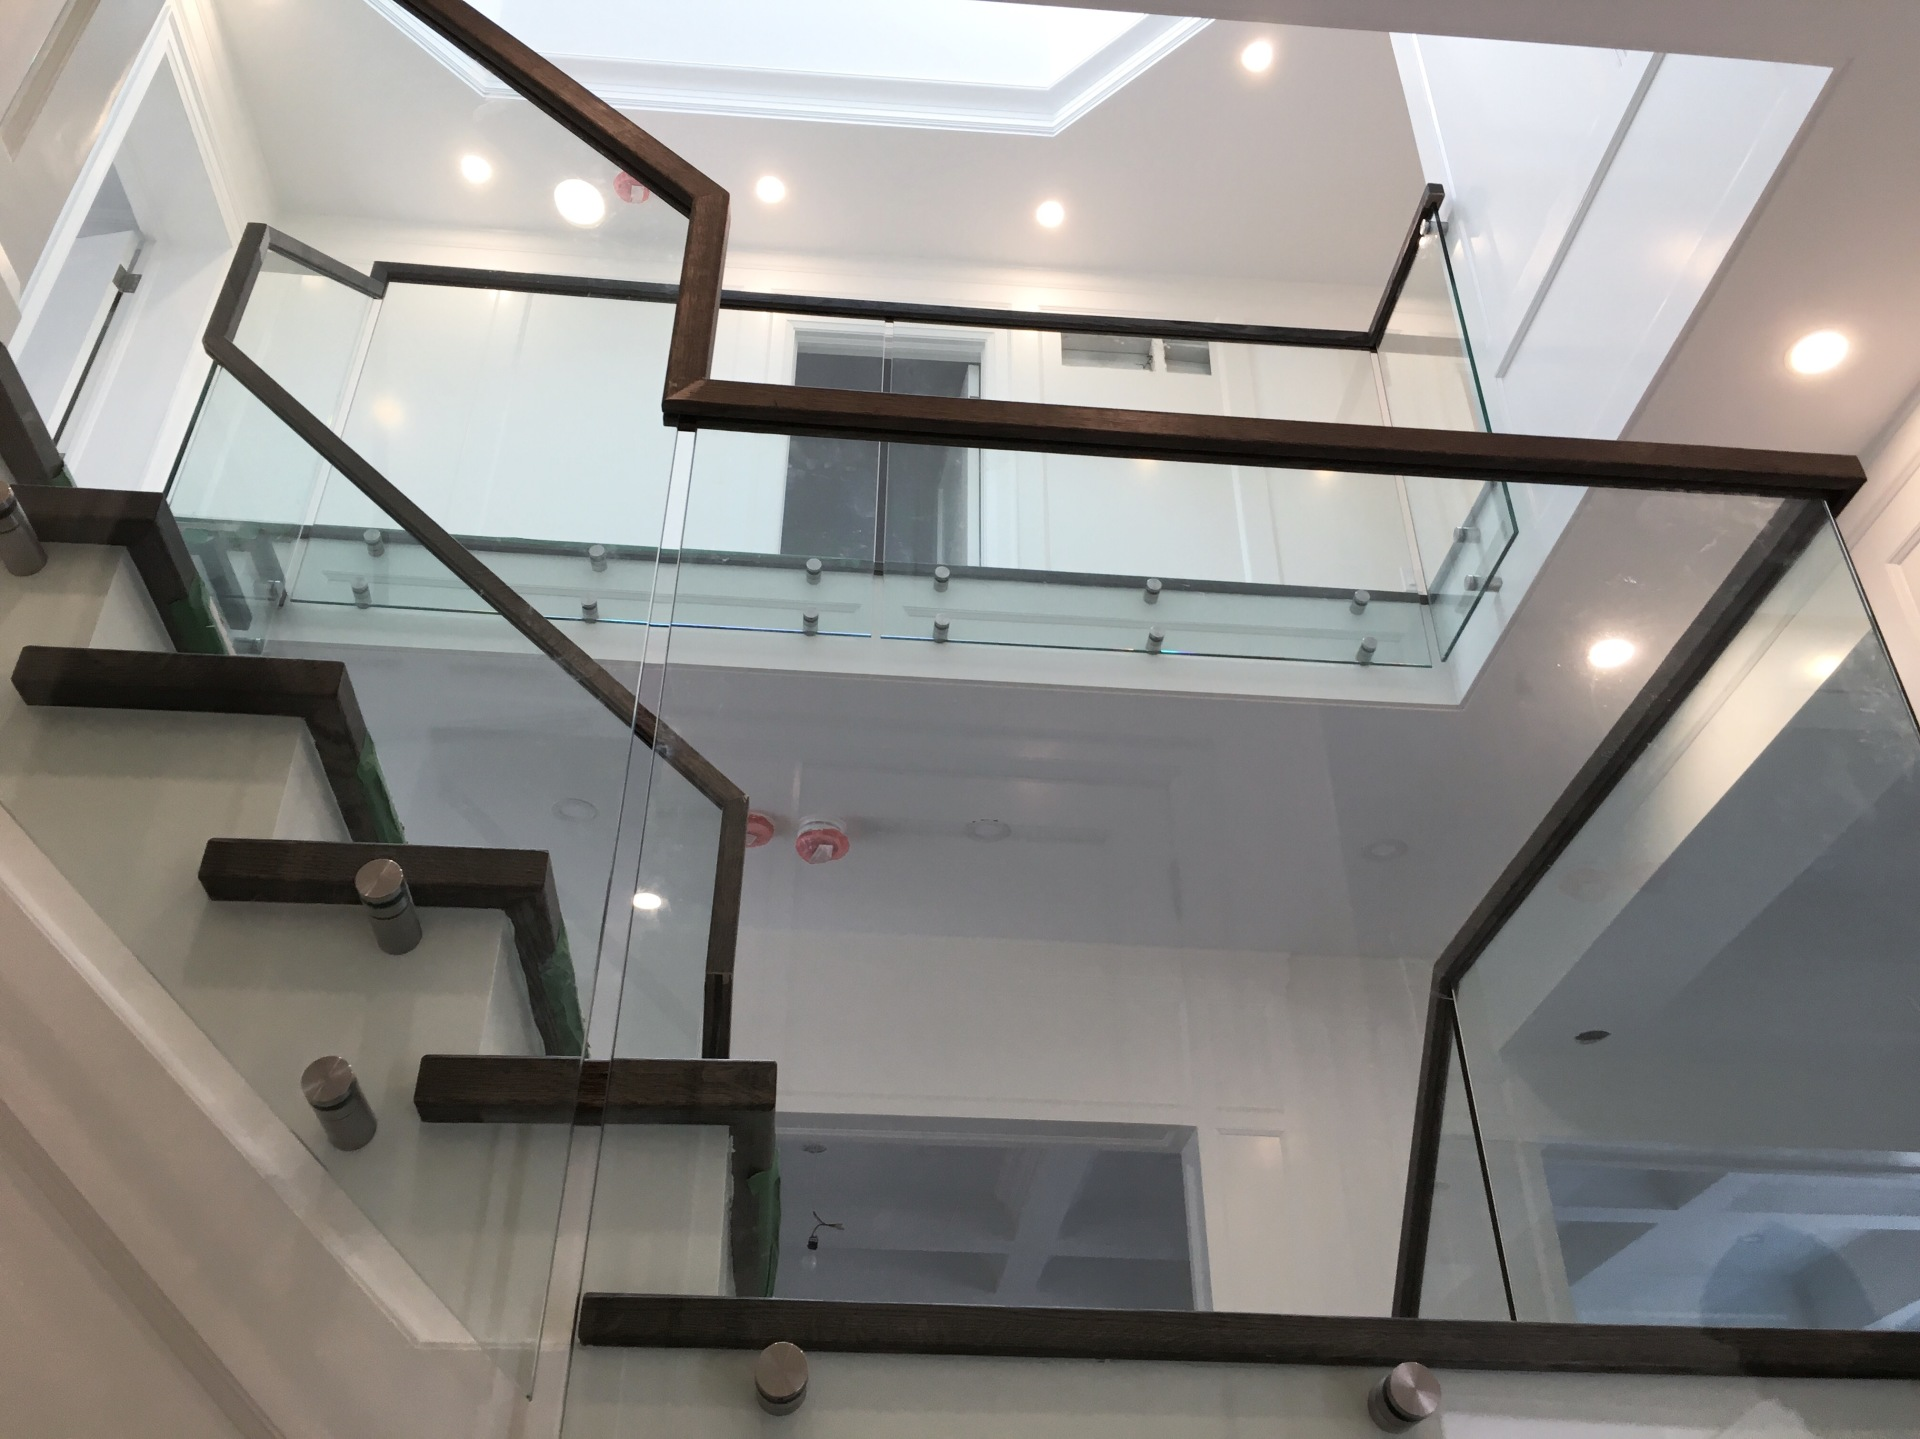 Continous Handrail Glass Railings